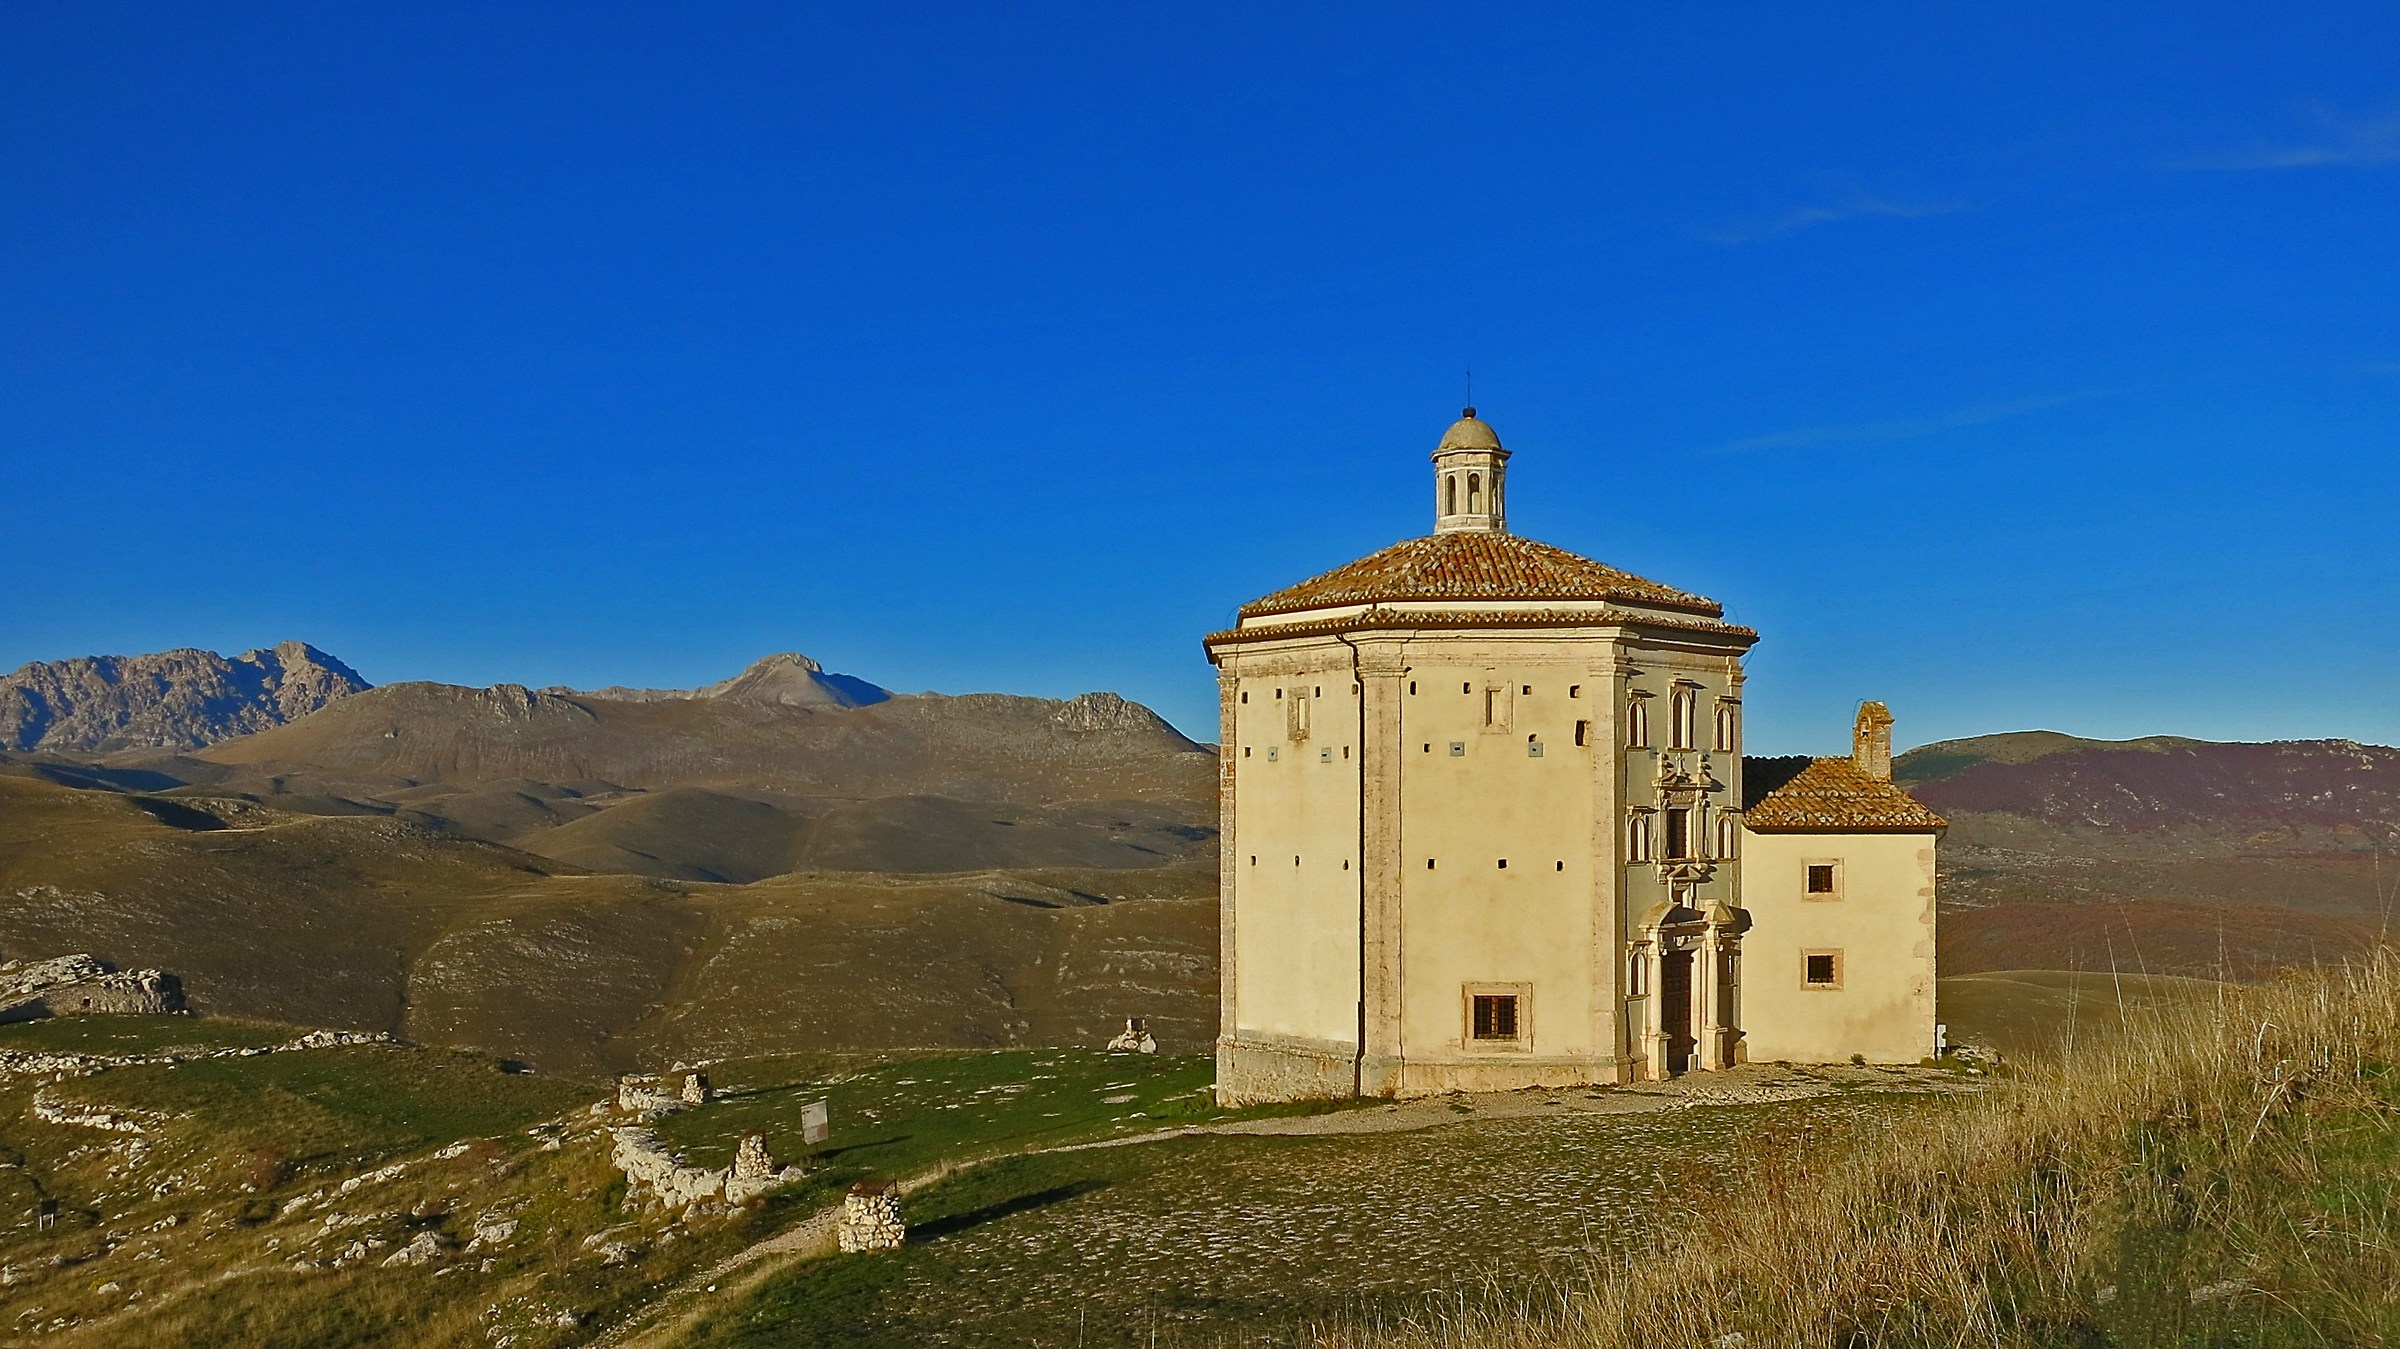 The Church of Santa Maria della Pieta in Rocca Calascio...